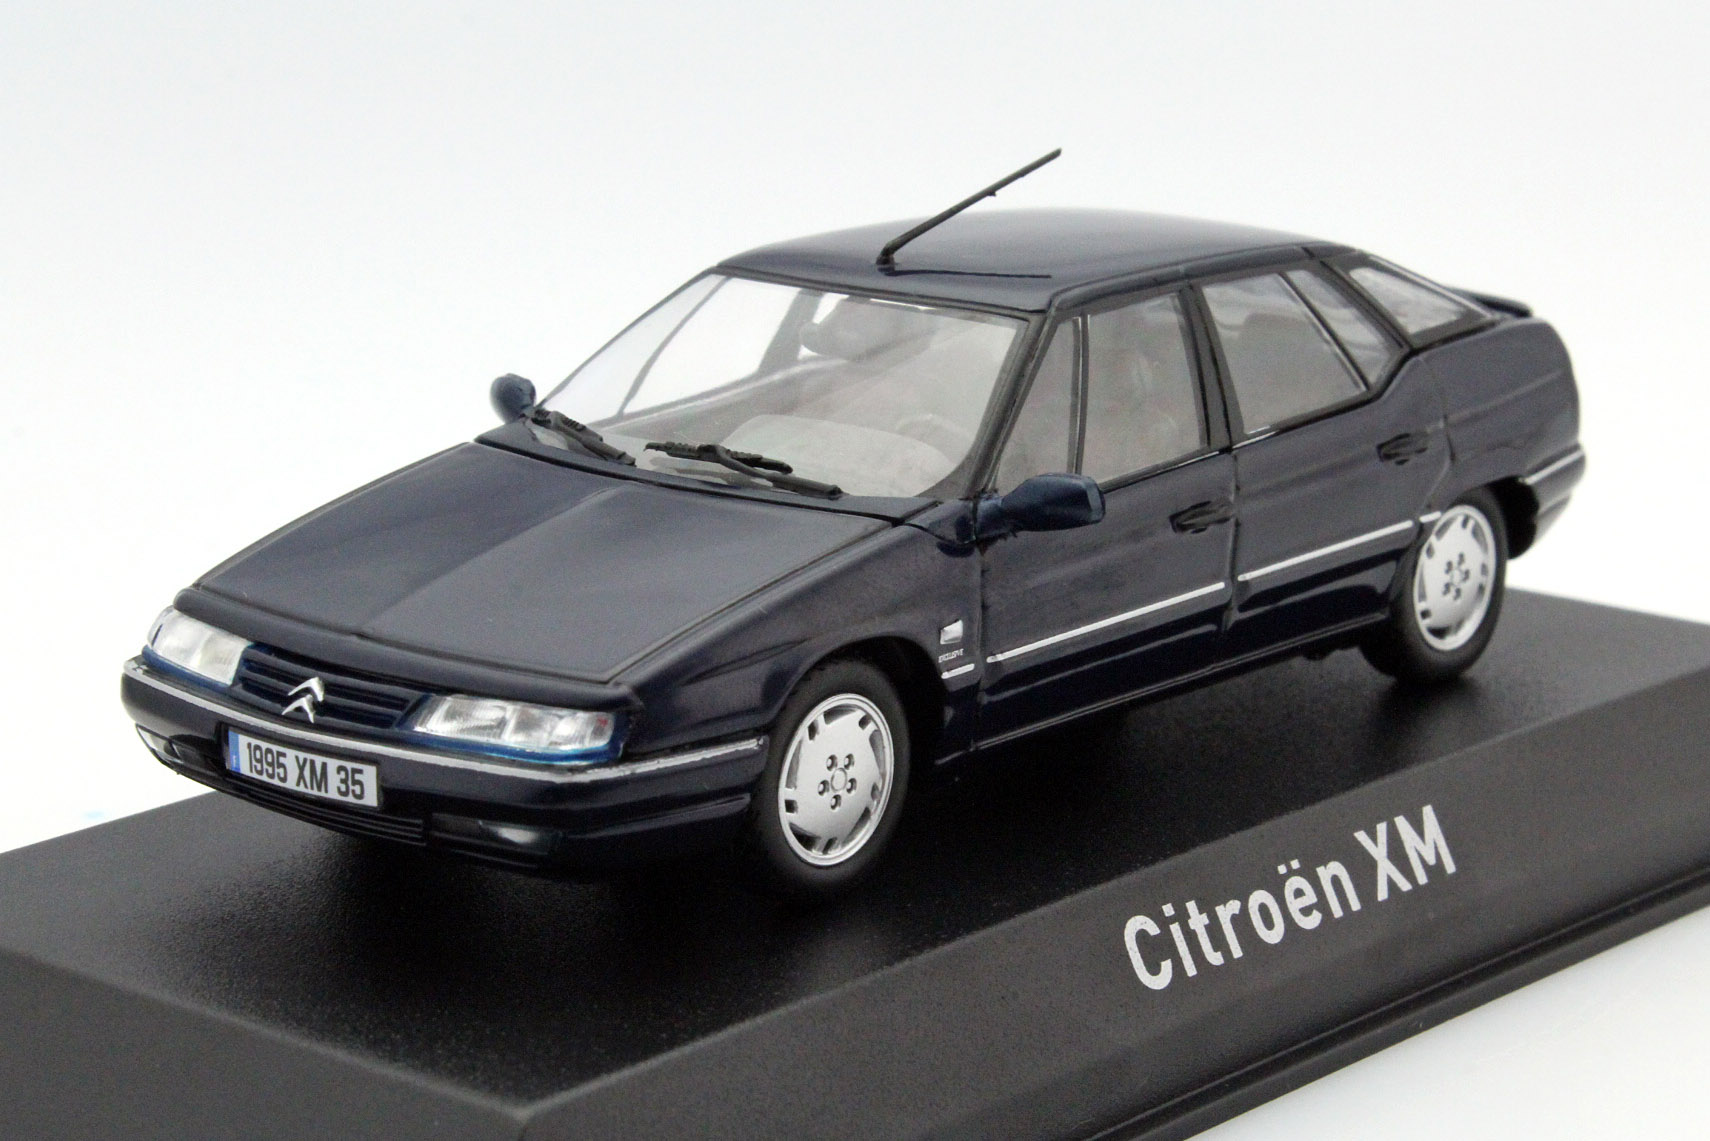 citroen xm 1995 dark blue die cast model norev 159126. Black Bedroom Furniture Sets. Home Design Ideas